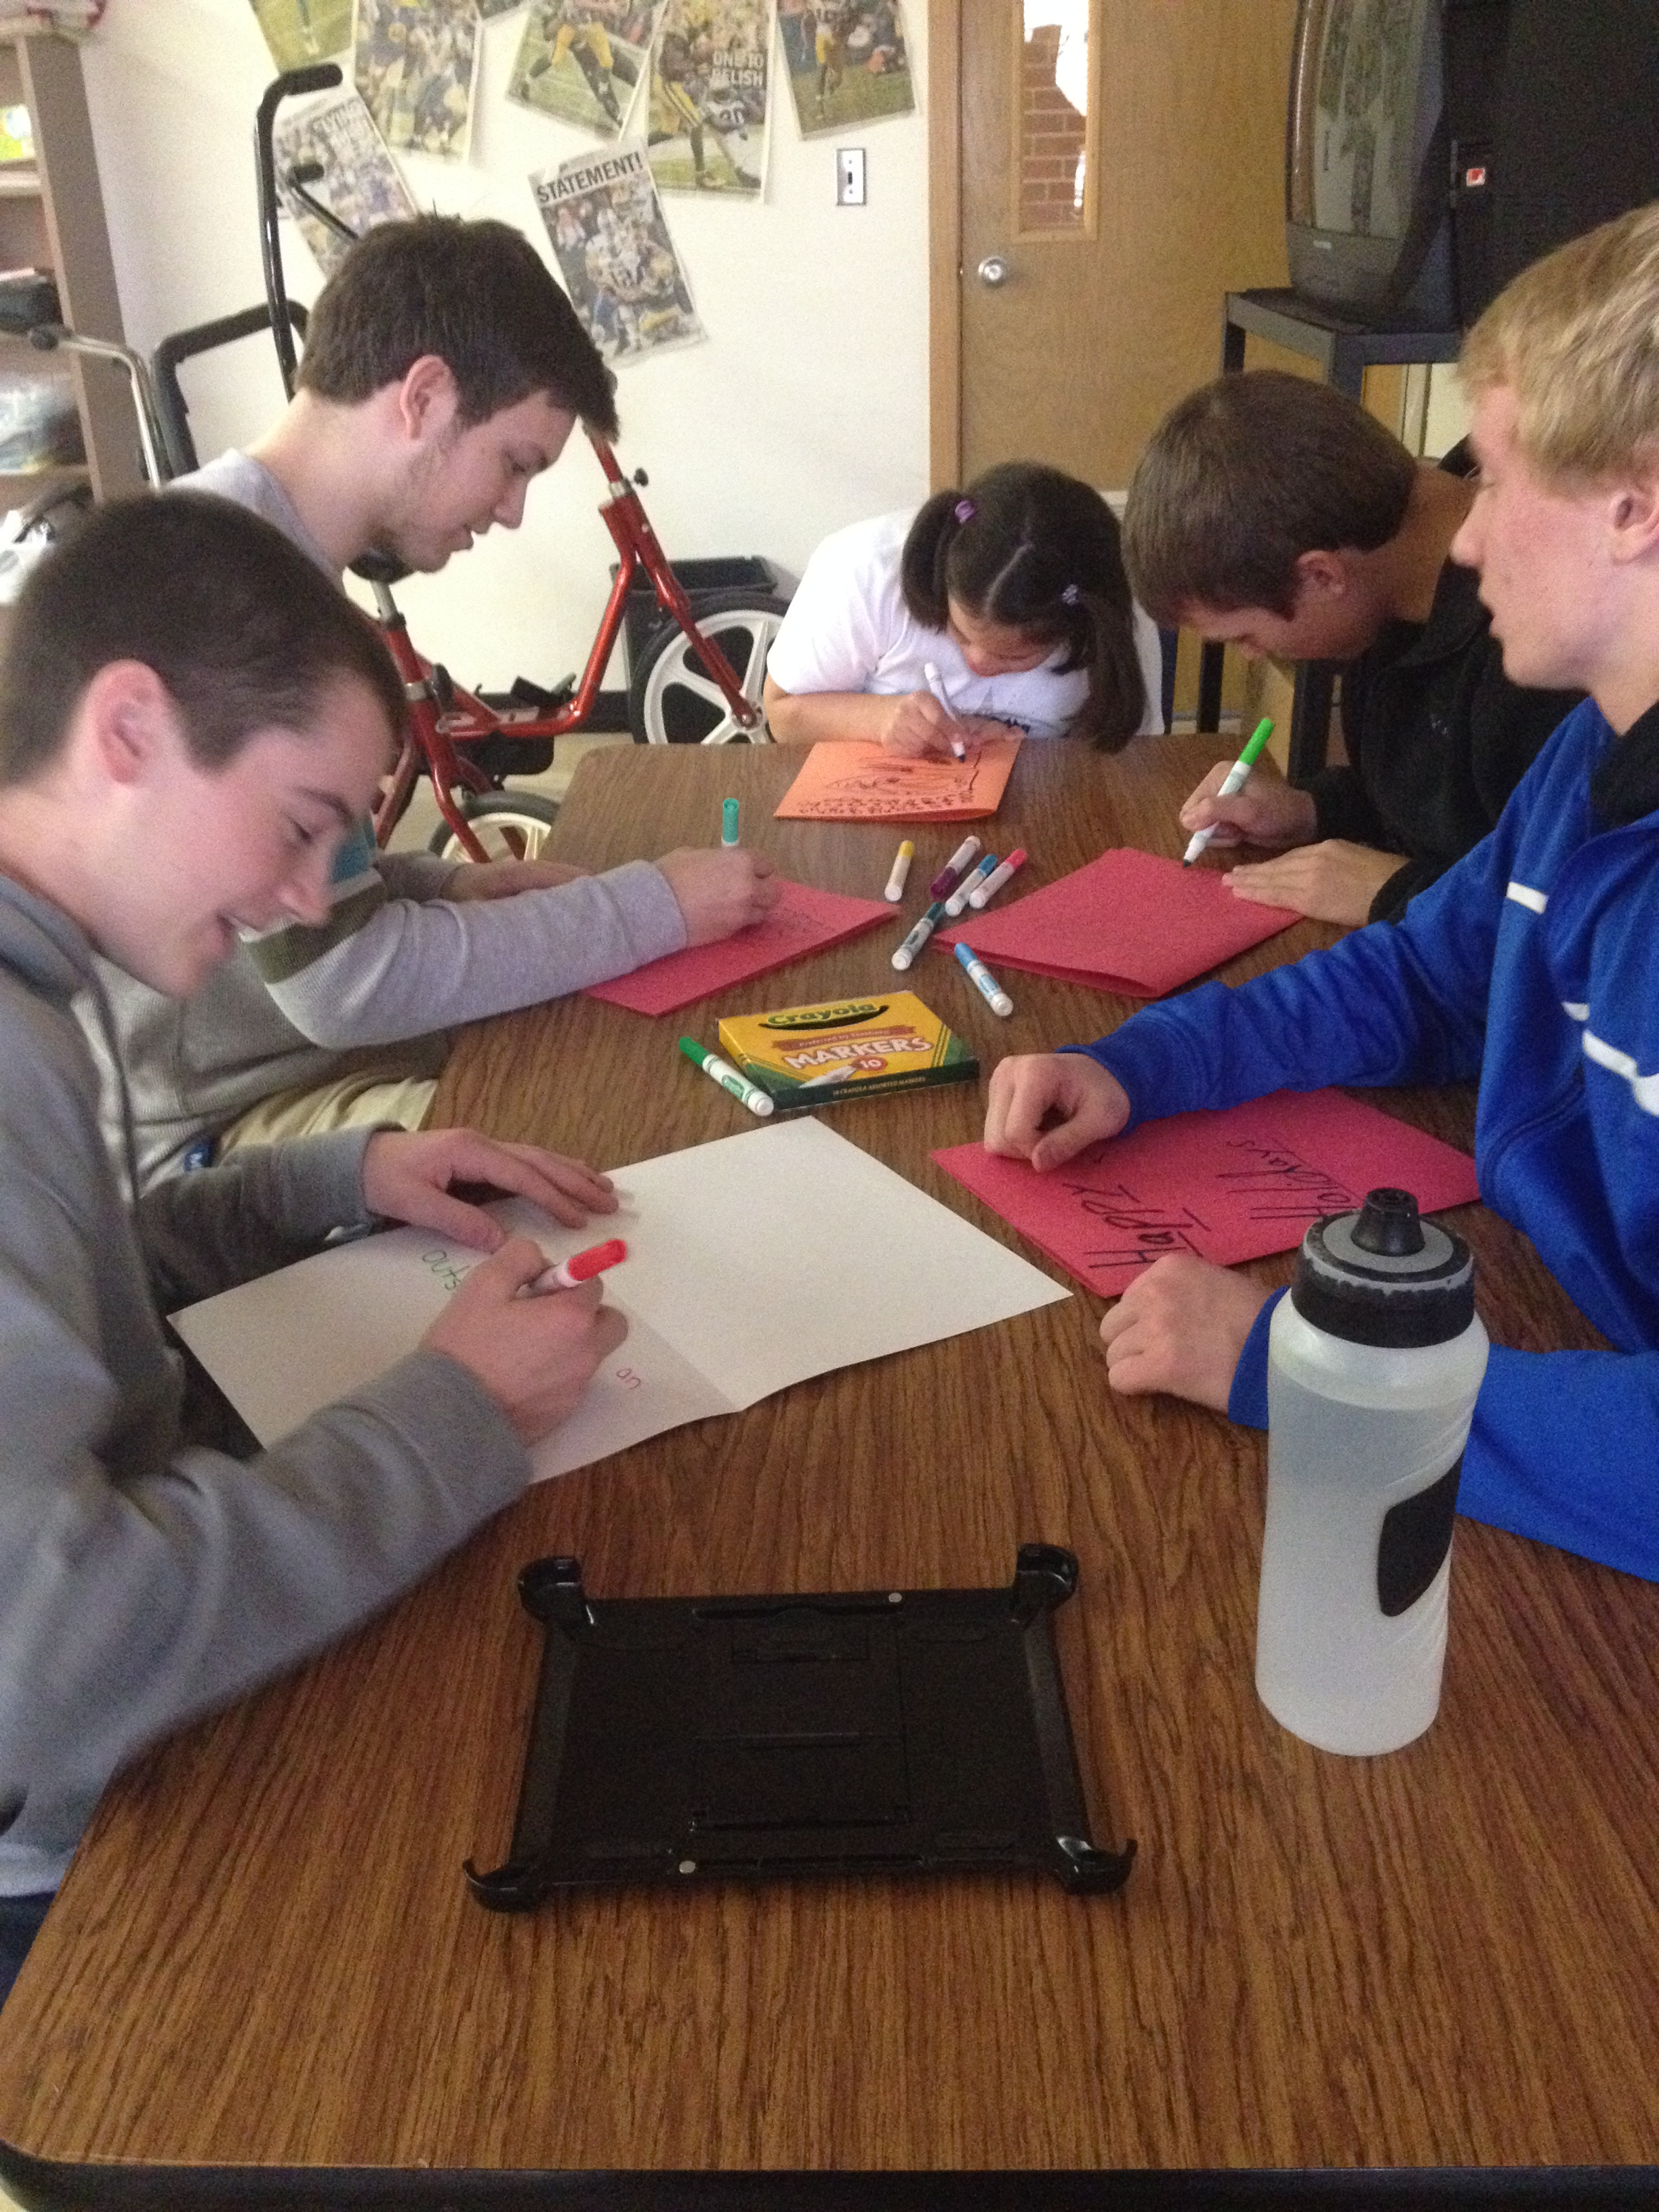 Members of We Are One club collaborate with Special Education students to make cards for VA hospital.